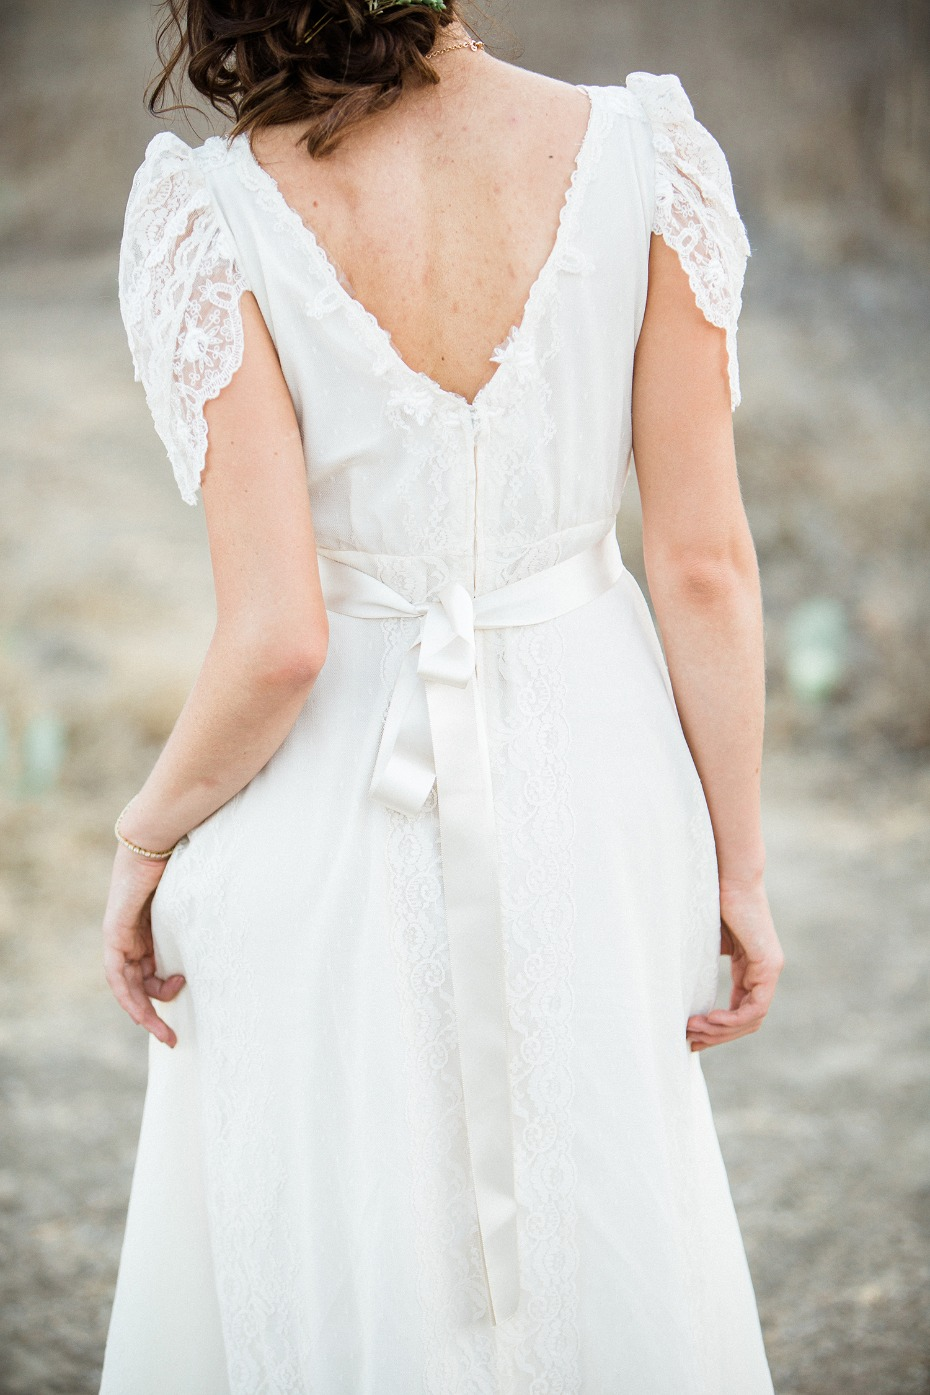 vintage style wedding dress by Gossamer